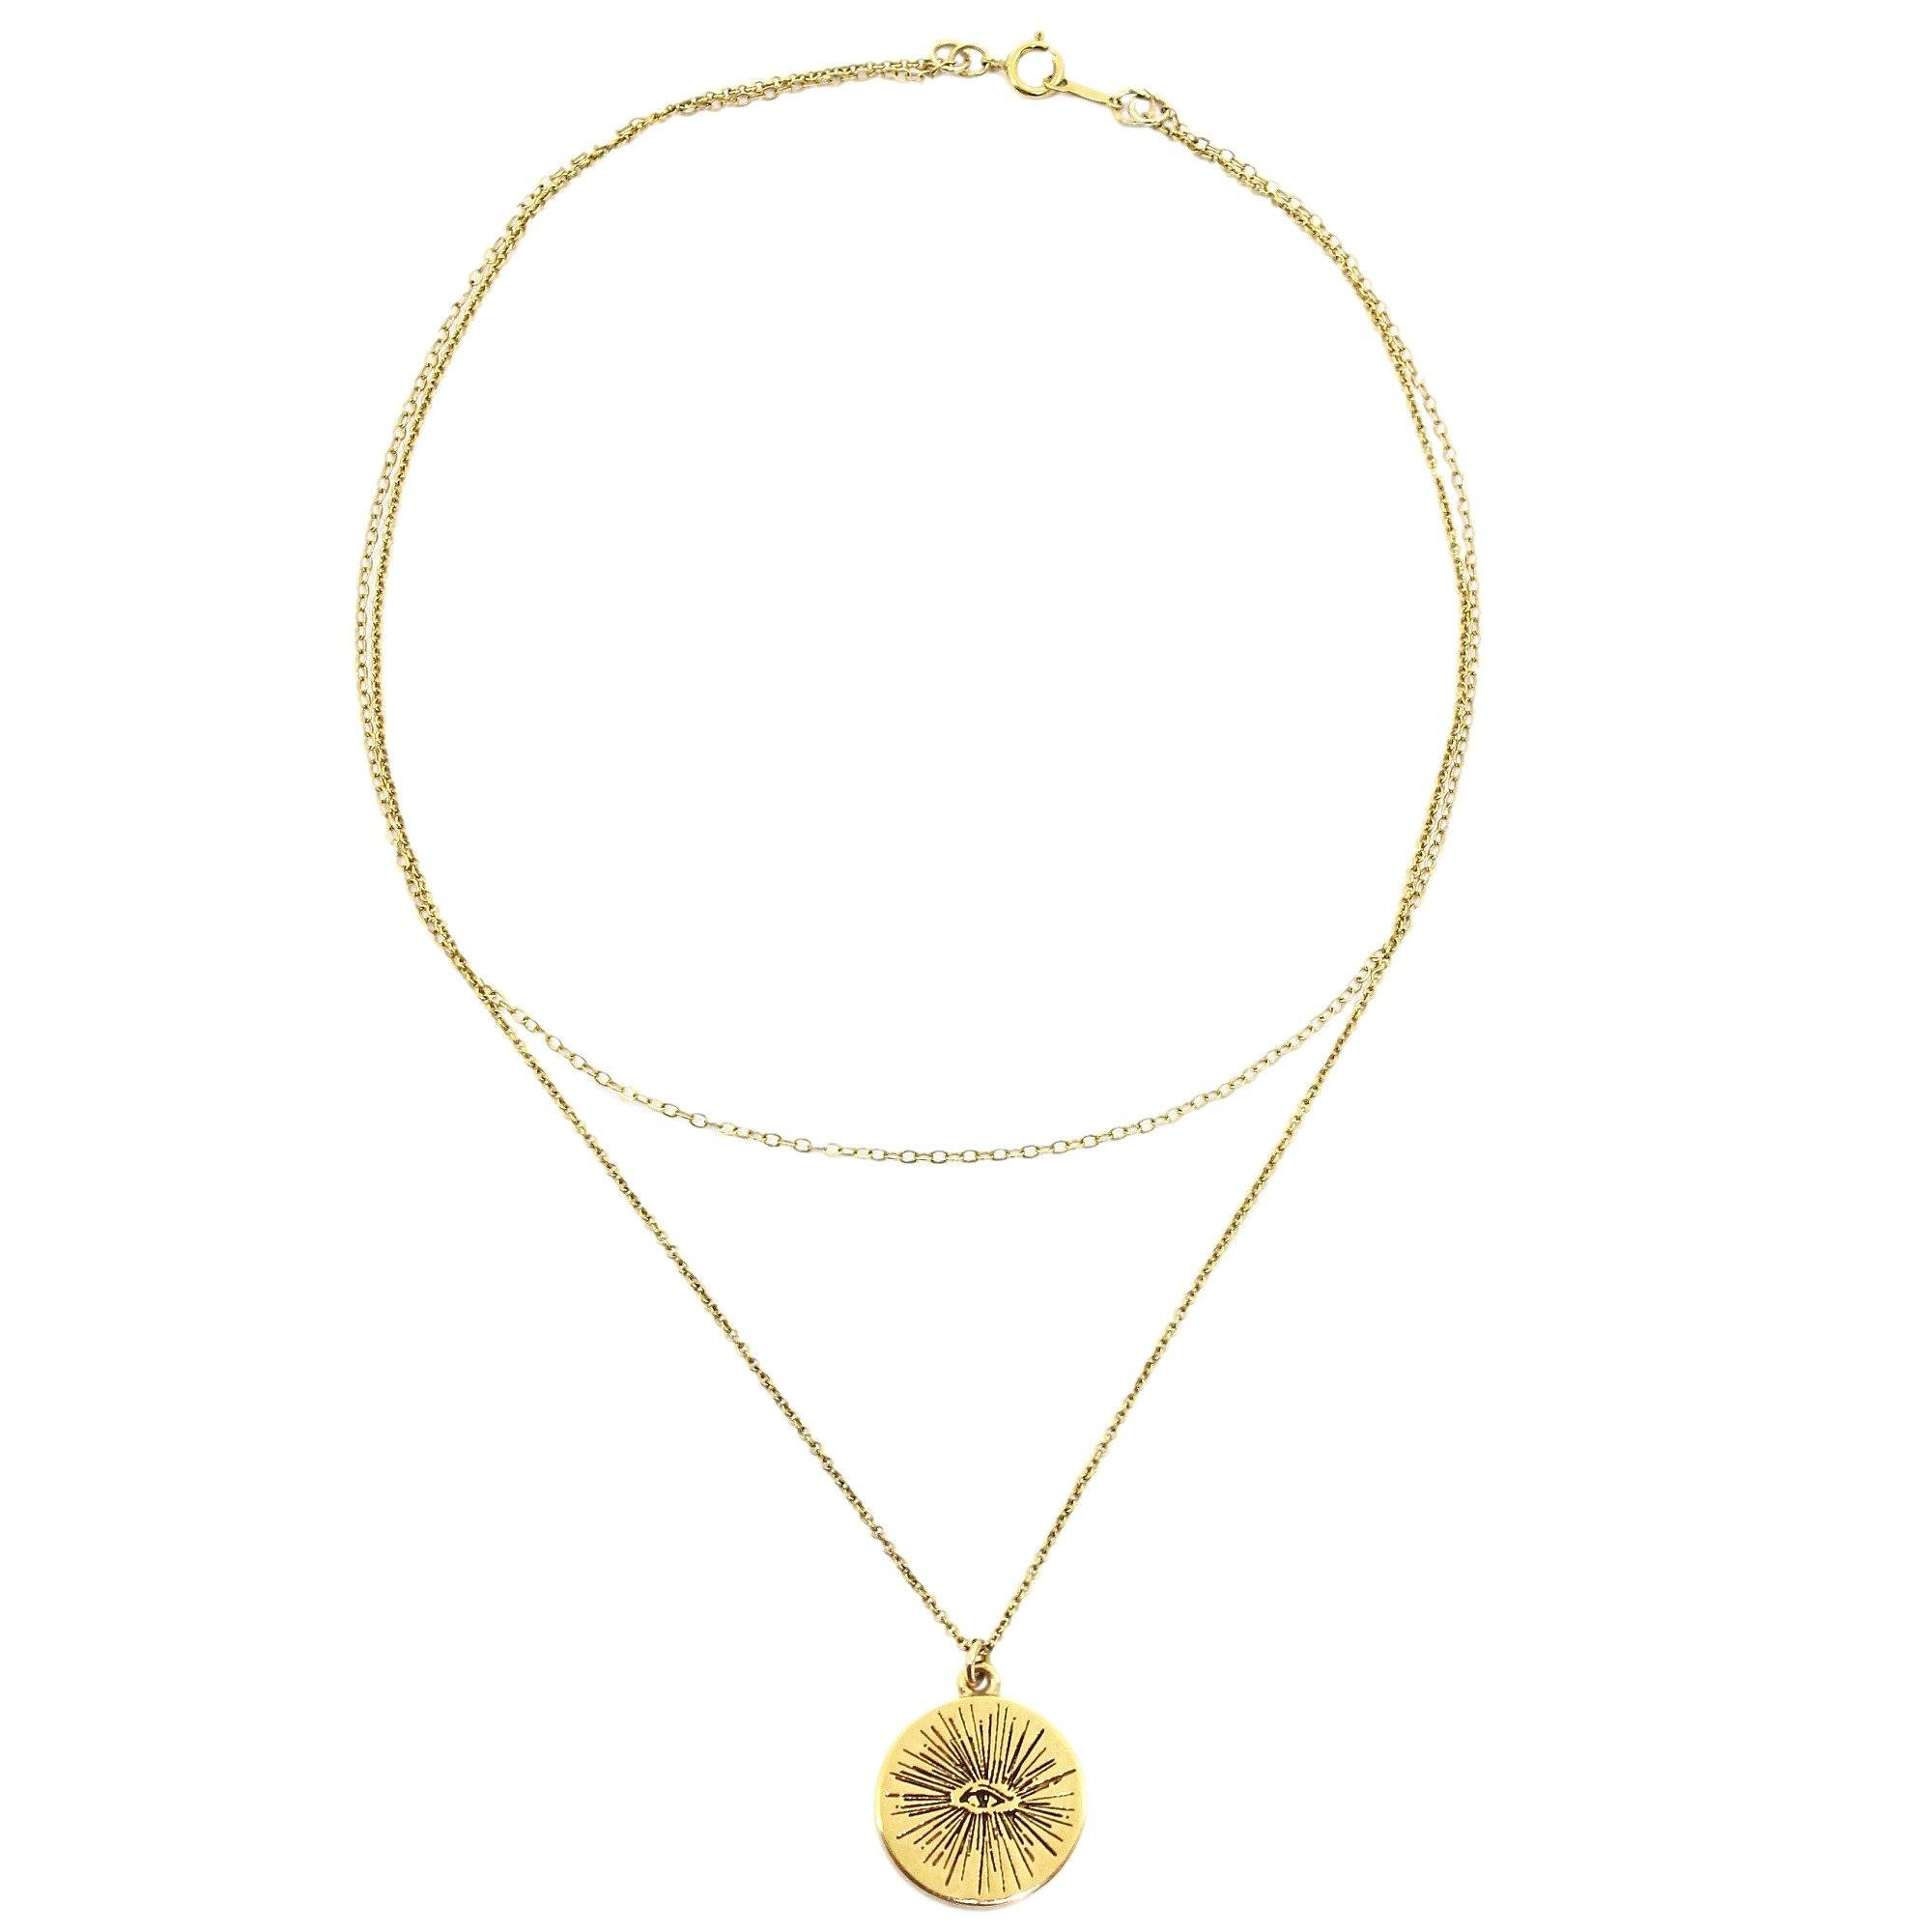 auld products gold necklace jewelry luna melanie